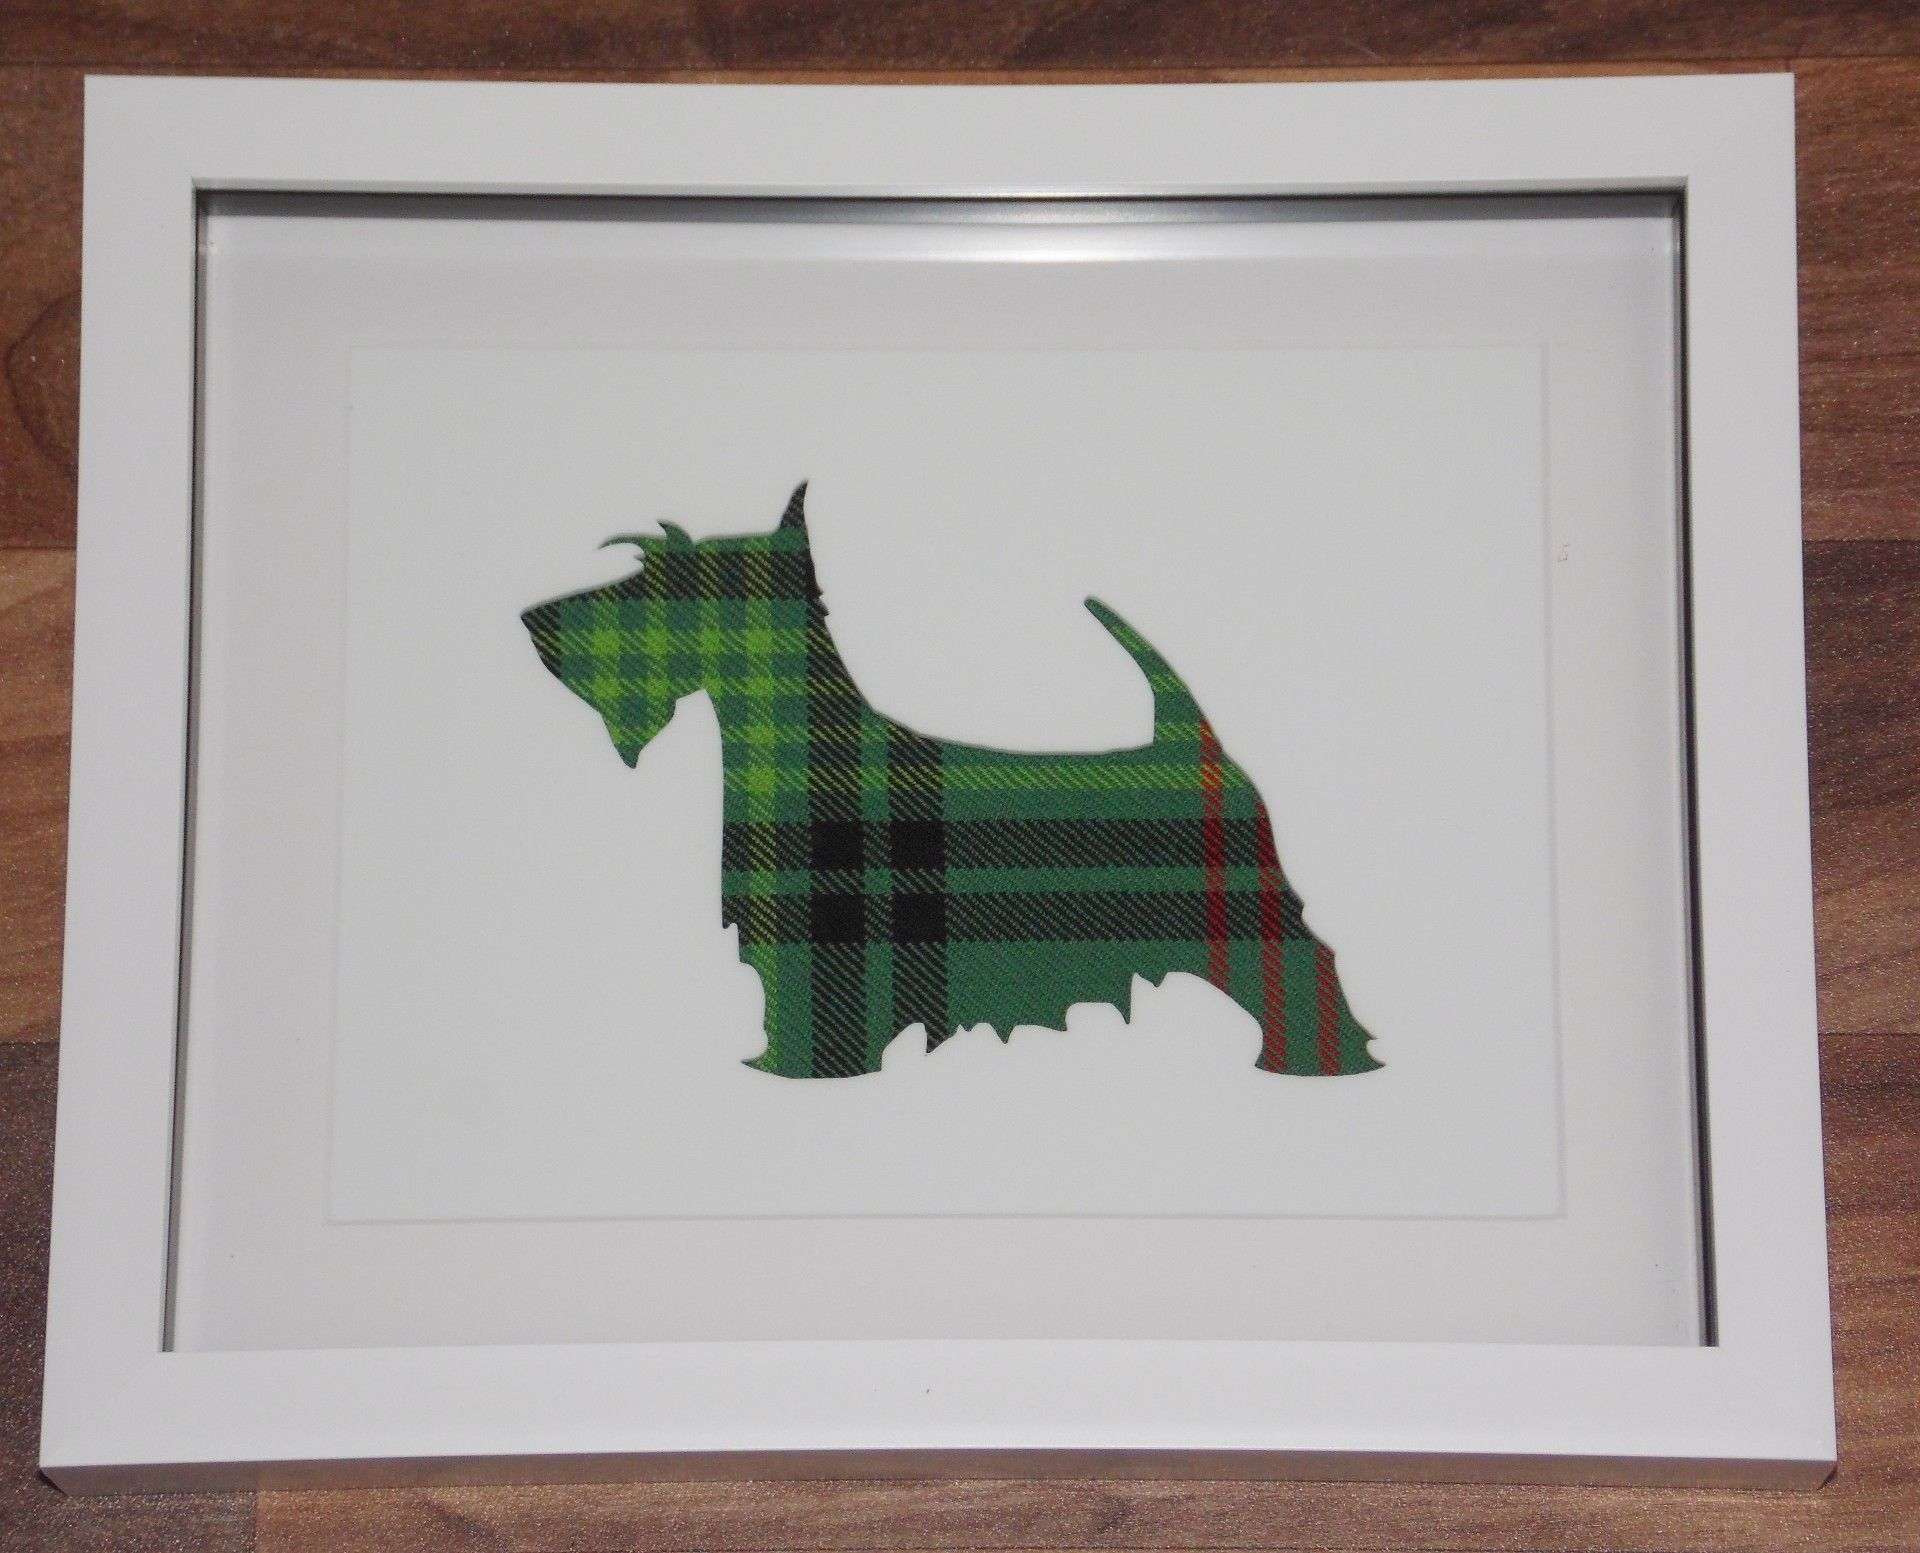 Tartan Scottish Terrier on white background